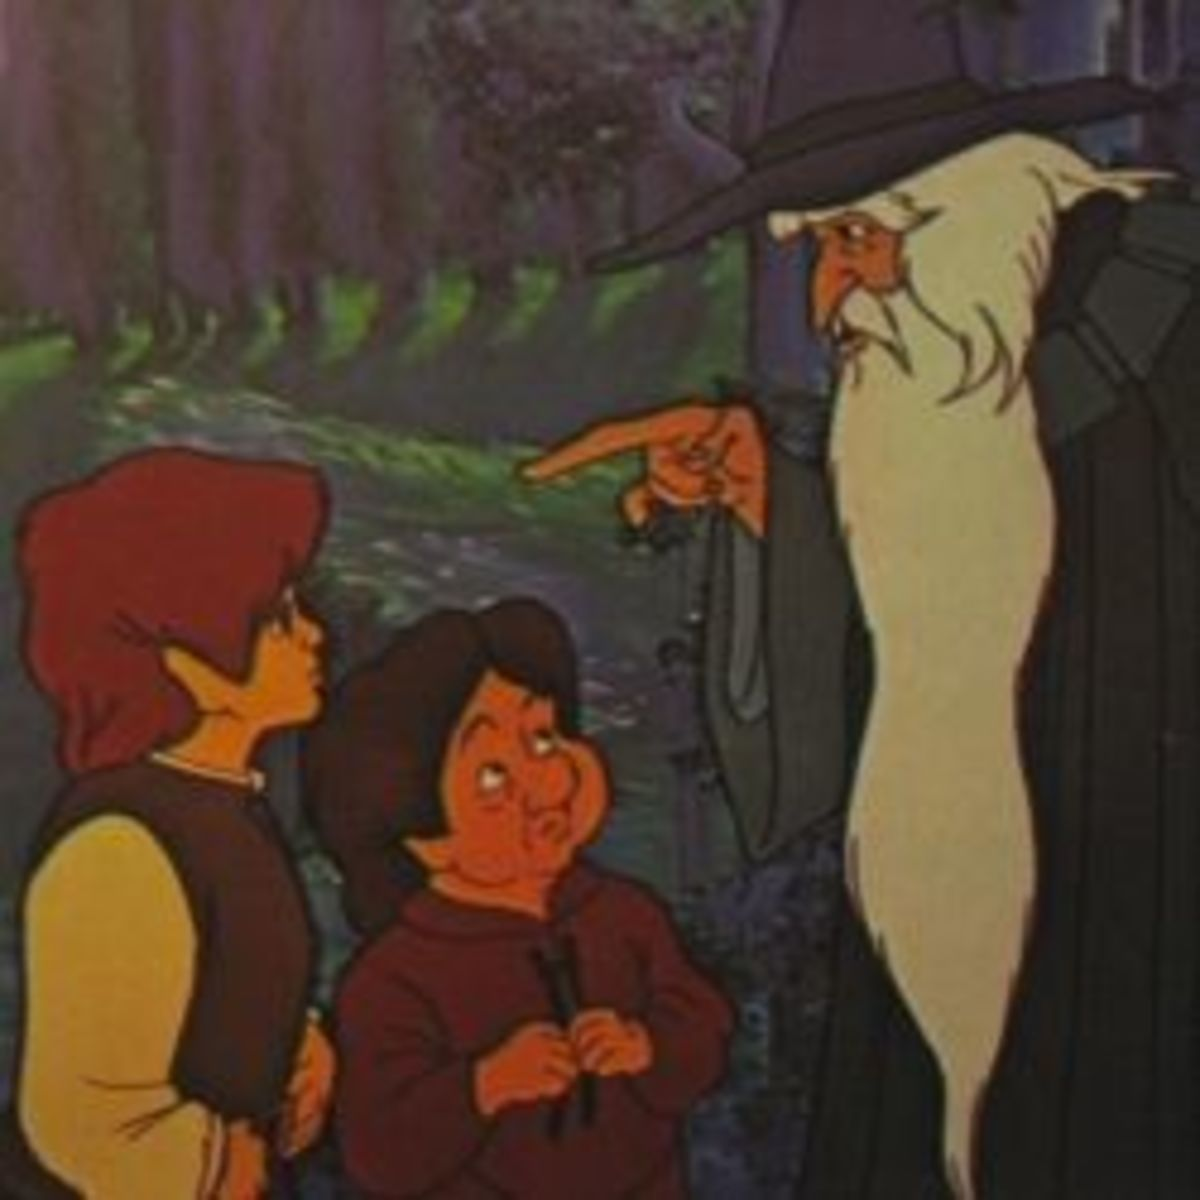 Picture from the Film Book of J.R.R. Tolkien's The Lord Of The Rings.